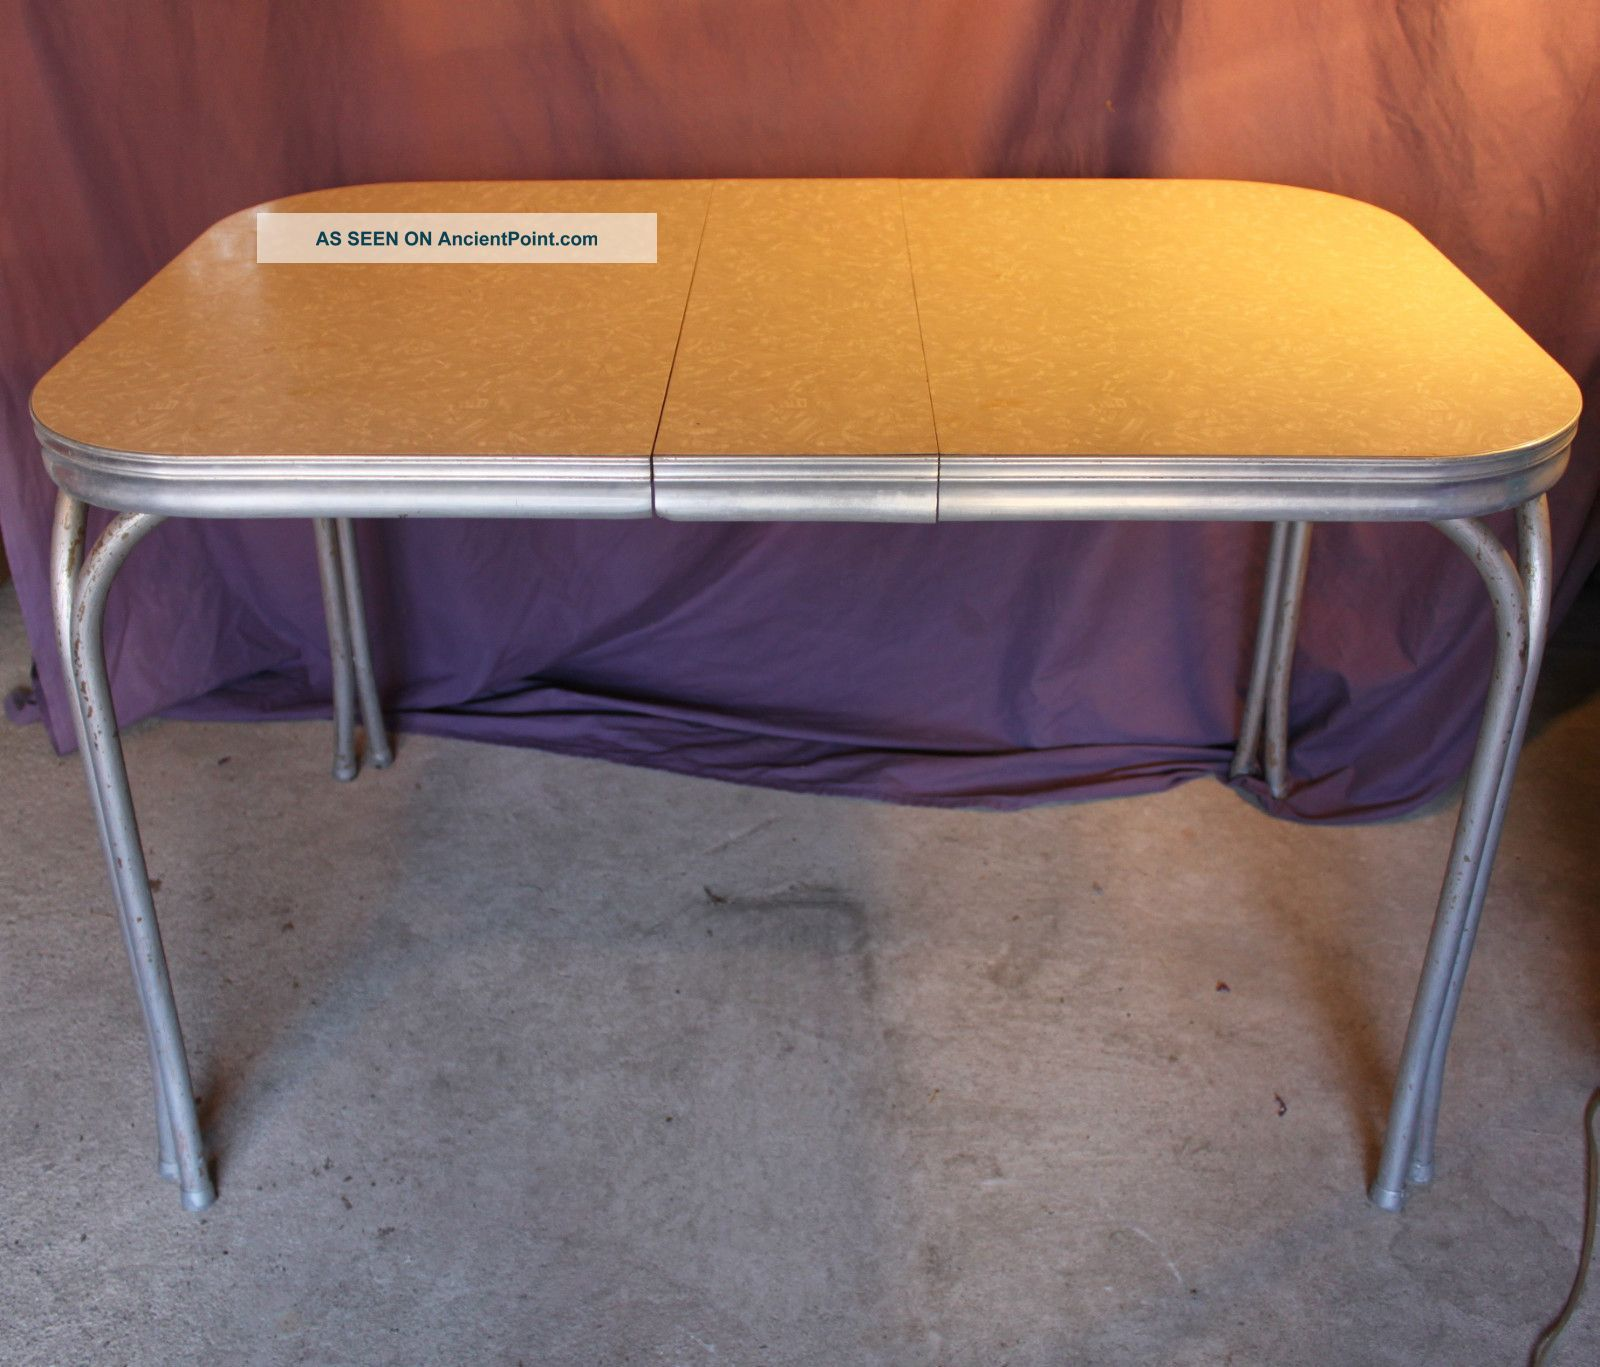 vintage retro 1950  u0027 s mid   century diner kitchen table formica silver metal chrome photos and information in ancientpoint formica tables       1950  u0027 s mid   century diner kitchen table      rh   pinterest com